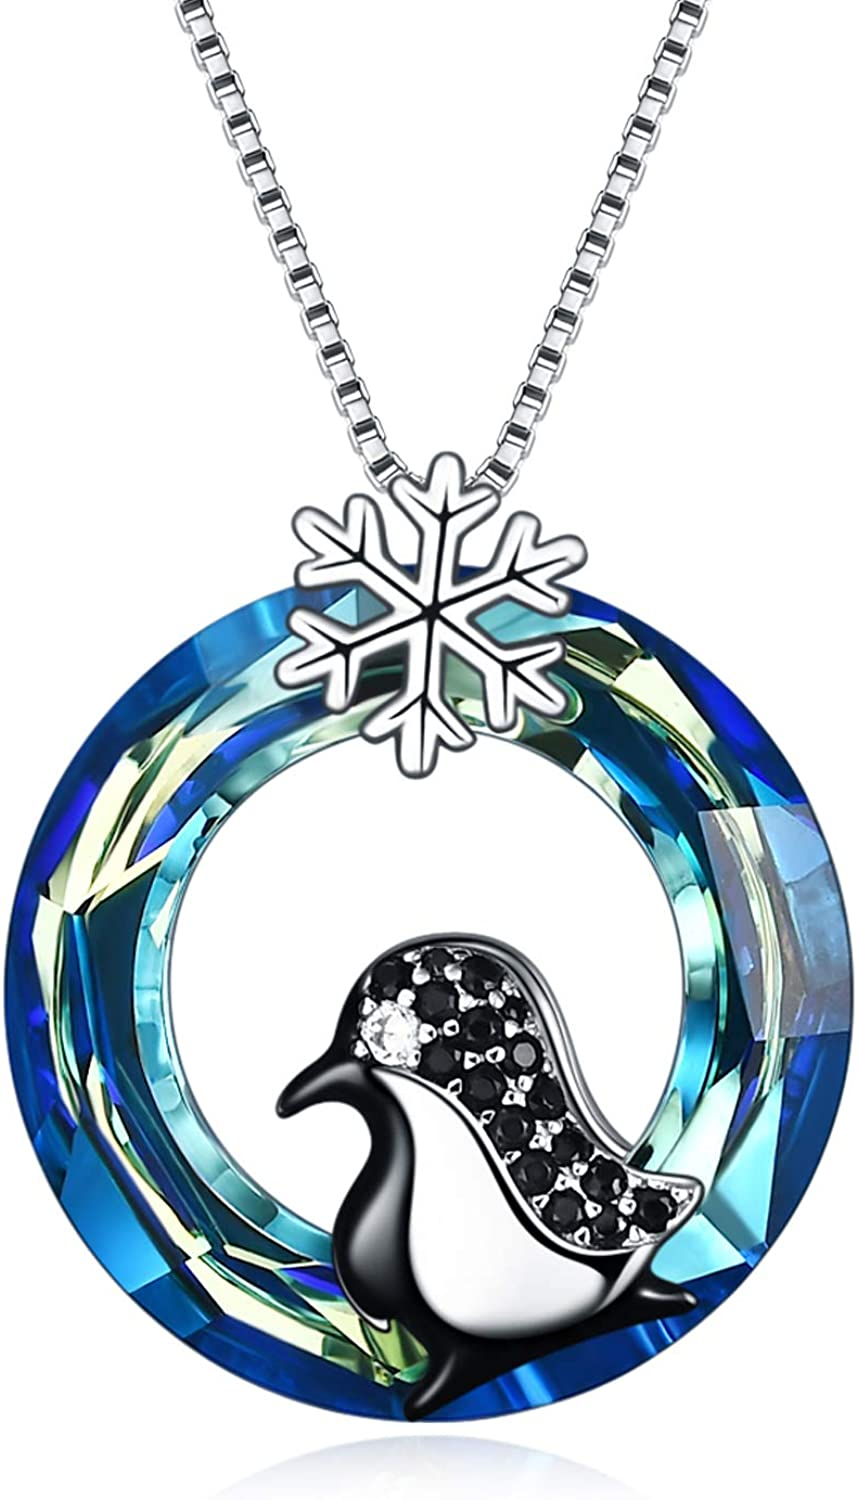 TOUPOP Many popular brands Penguin Gifts 925 Sterling with B Max 76% OFF Silver Necklace